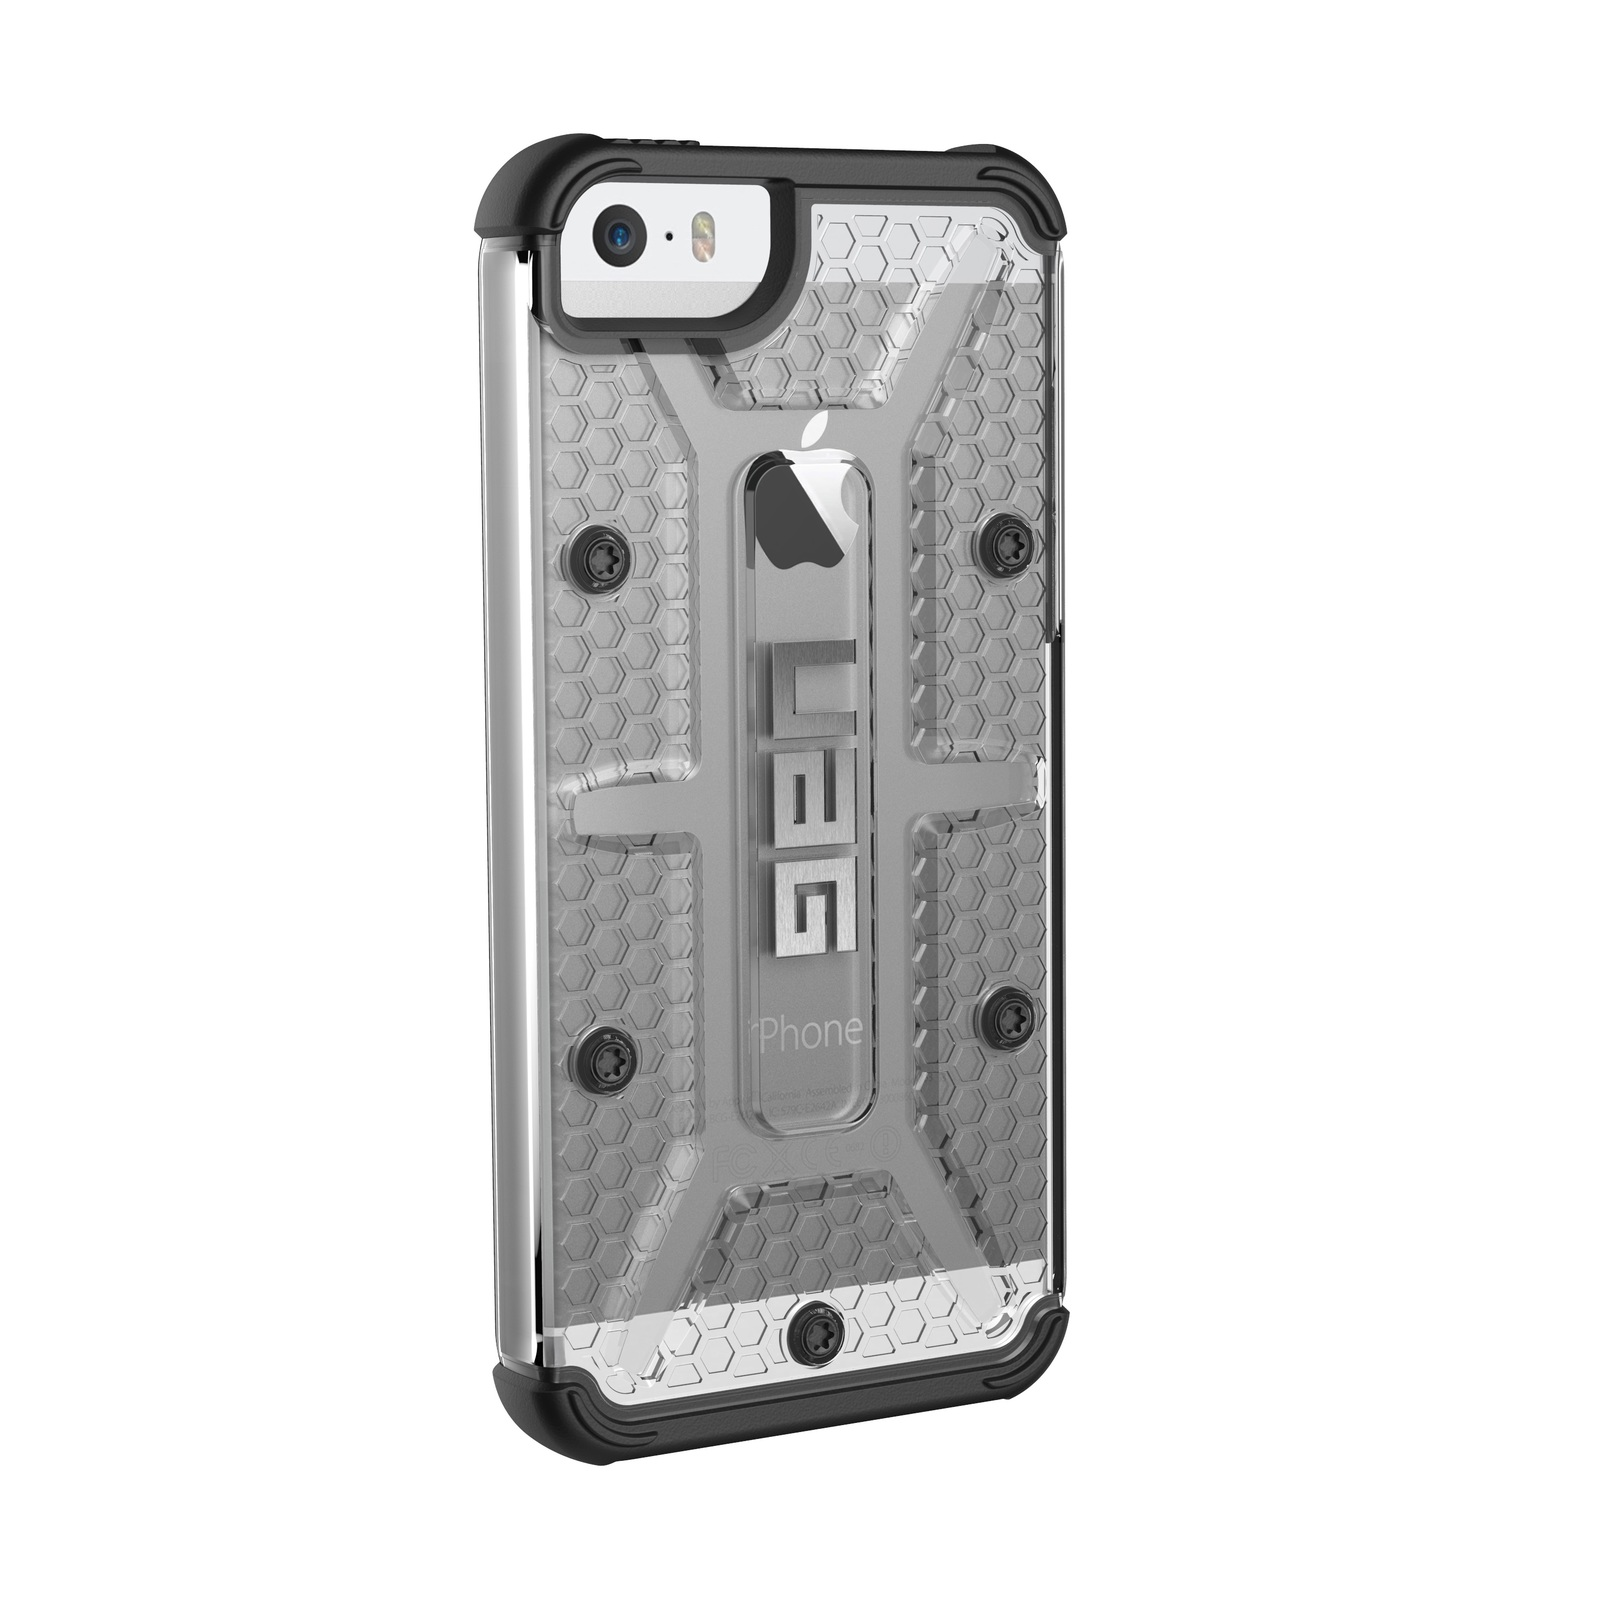 UAG Composite Case for iPhone 5S/SE (Ice/Black) image